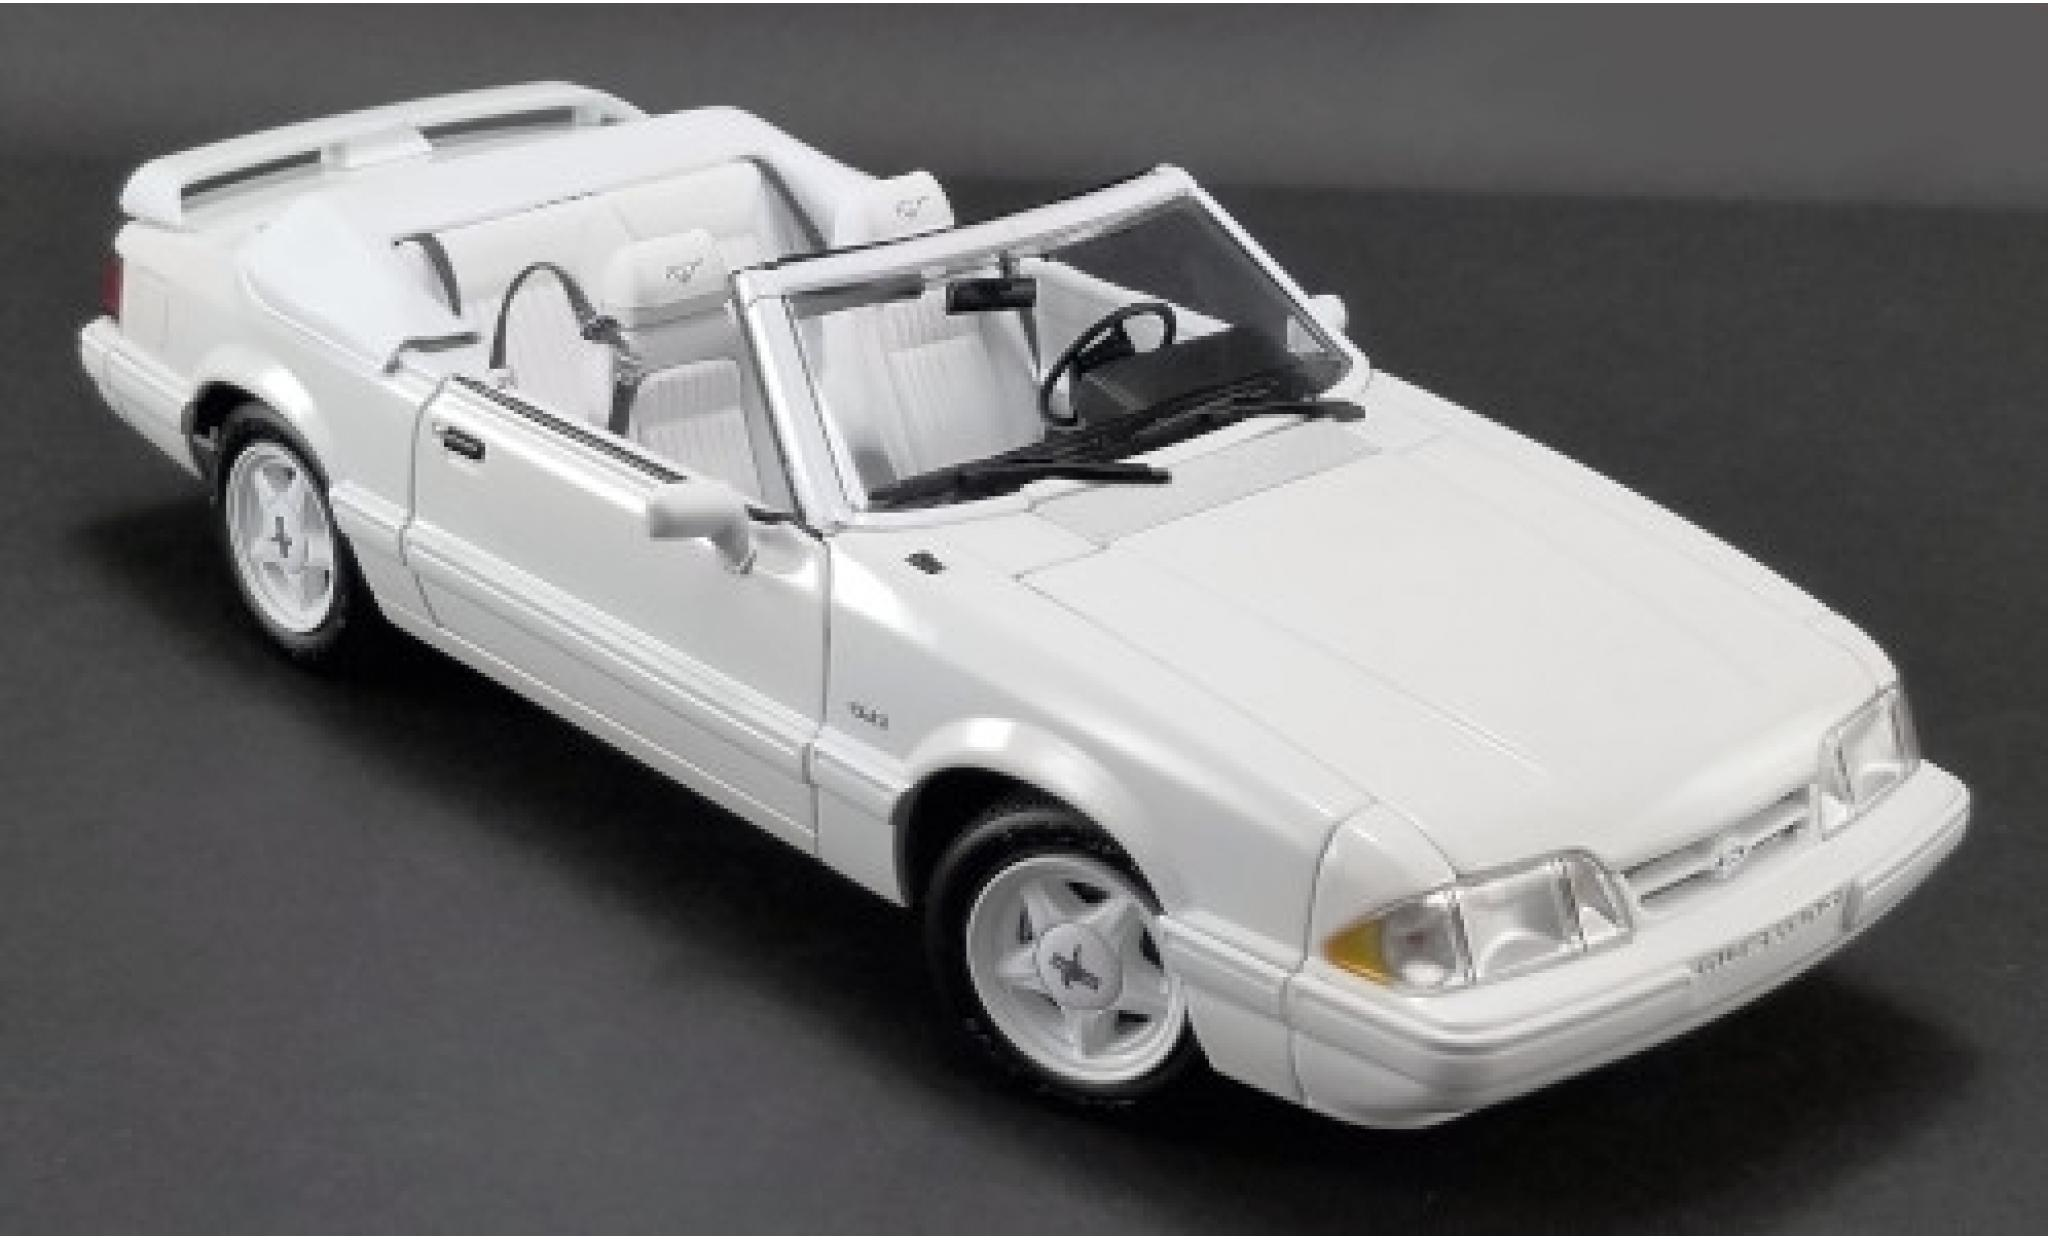 Ford Mustang 1/18 GMP LX 5.0L Convertible Feature Car blanche 1993 Softtop liegt bei